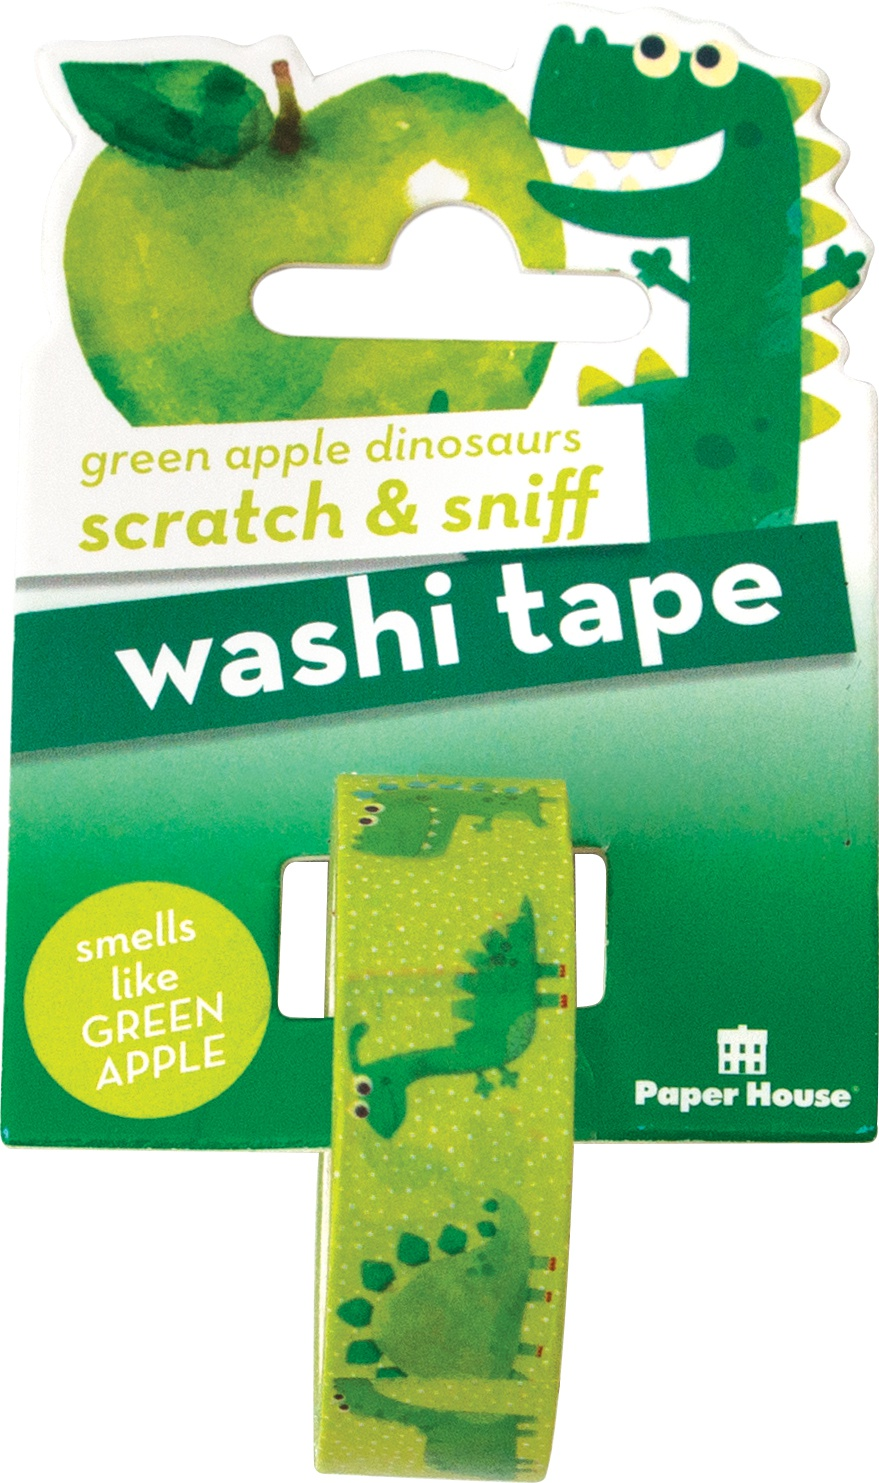 Paper House Scratch & Sniff Washi Tape-Green Apple Dinosaurs, 15mmX8m